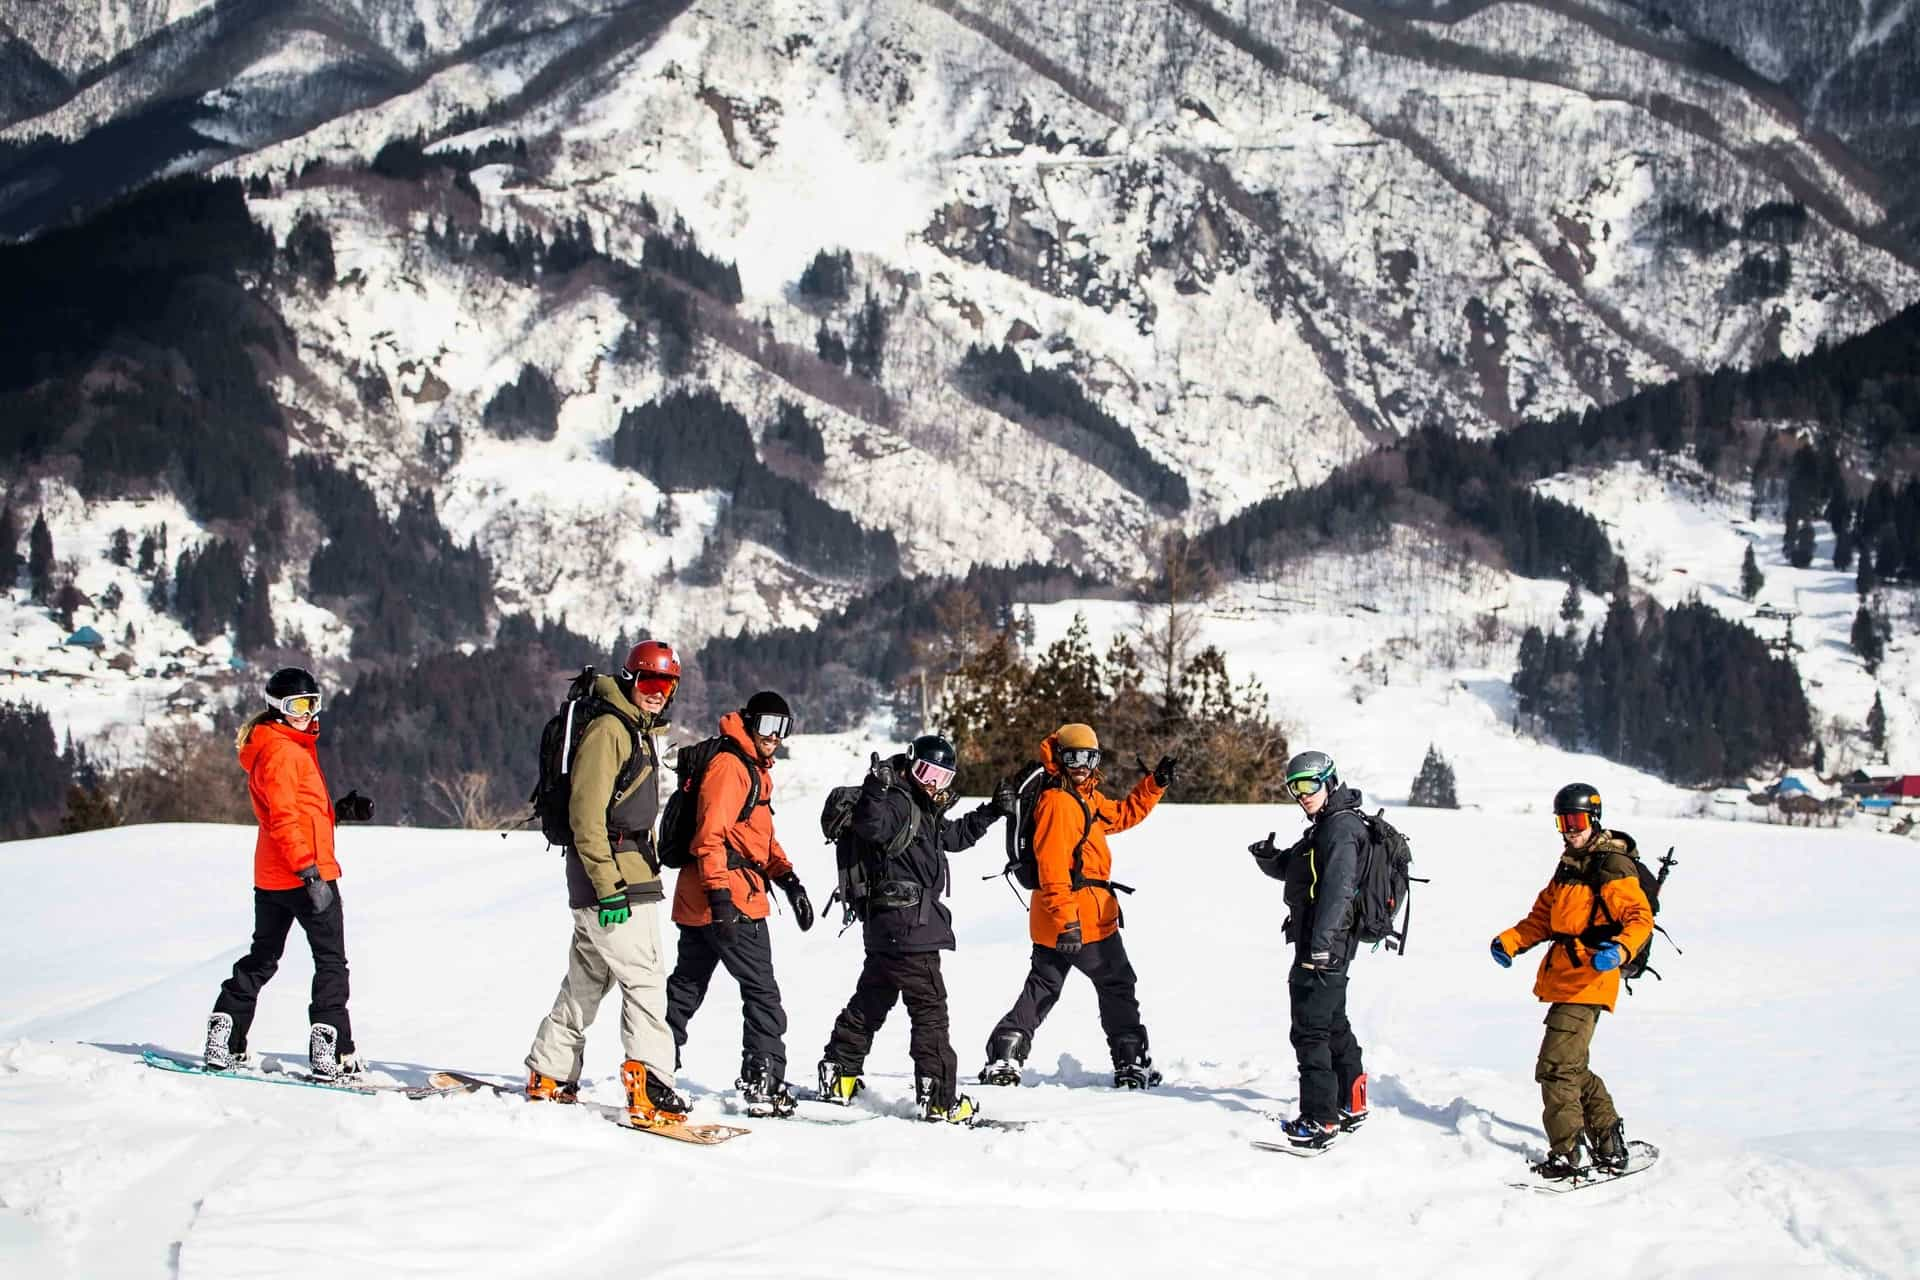 Group is stoked during a fun spring time snowboard run in Japan